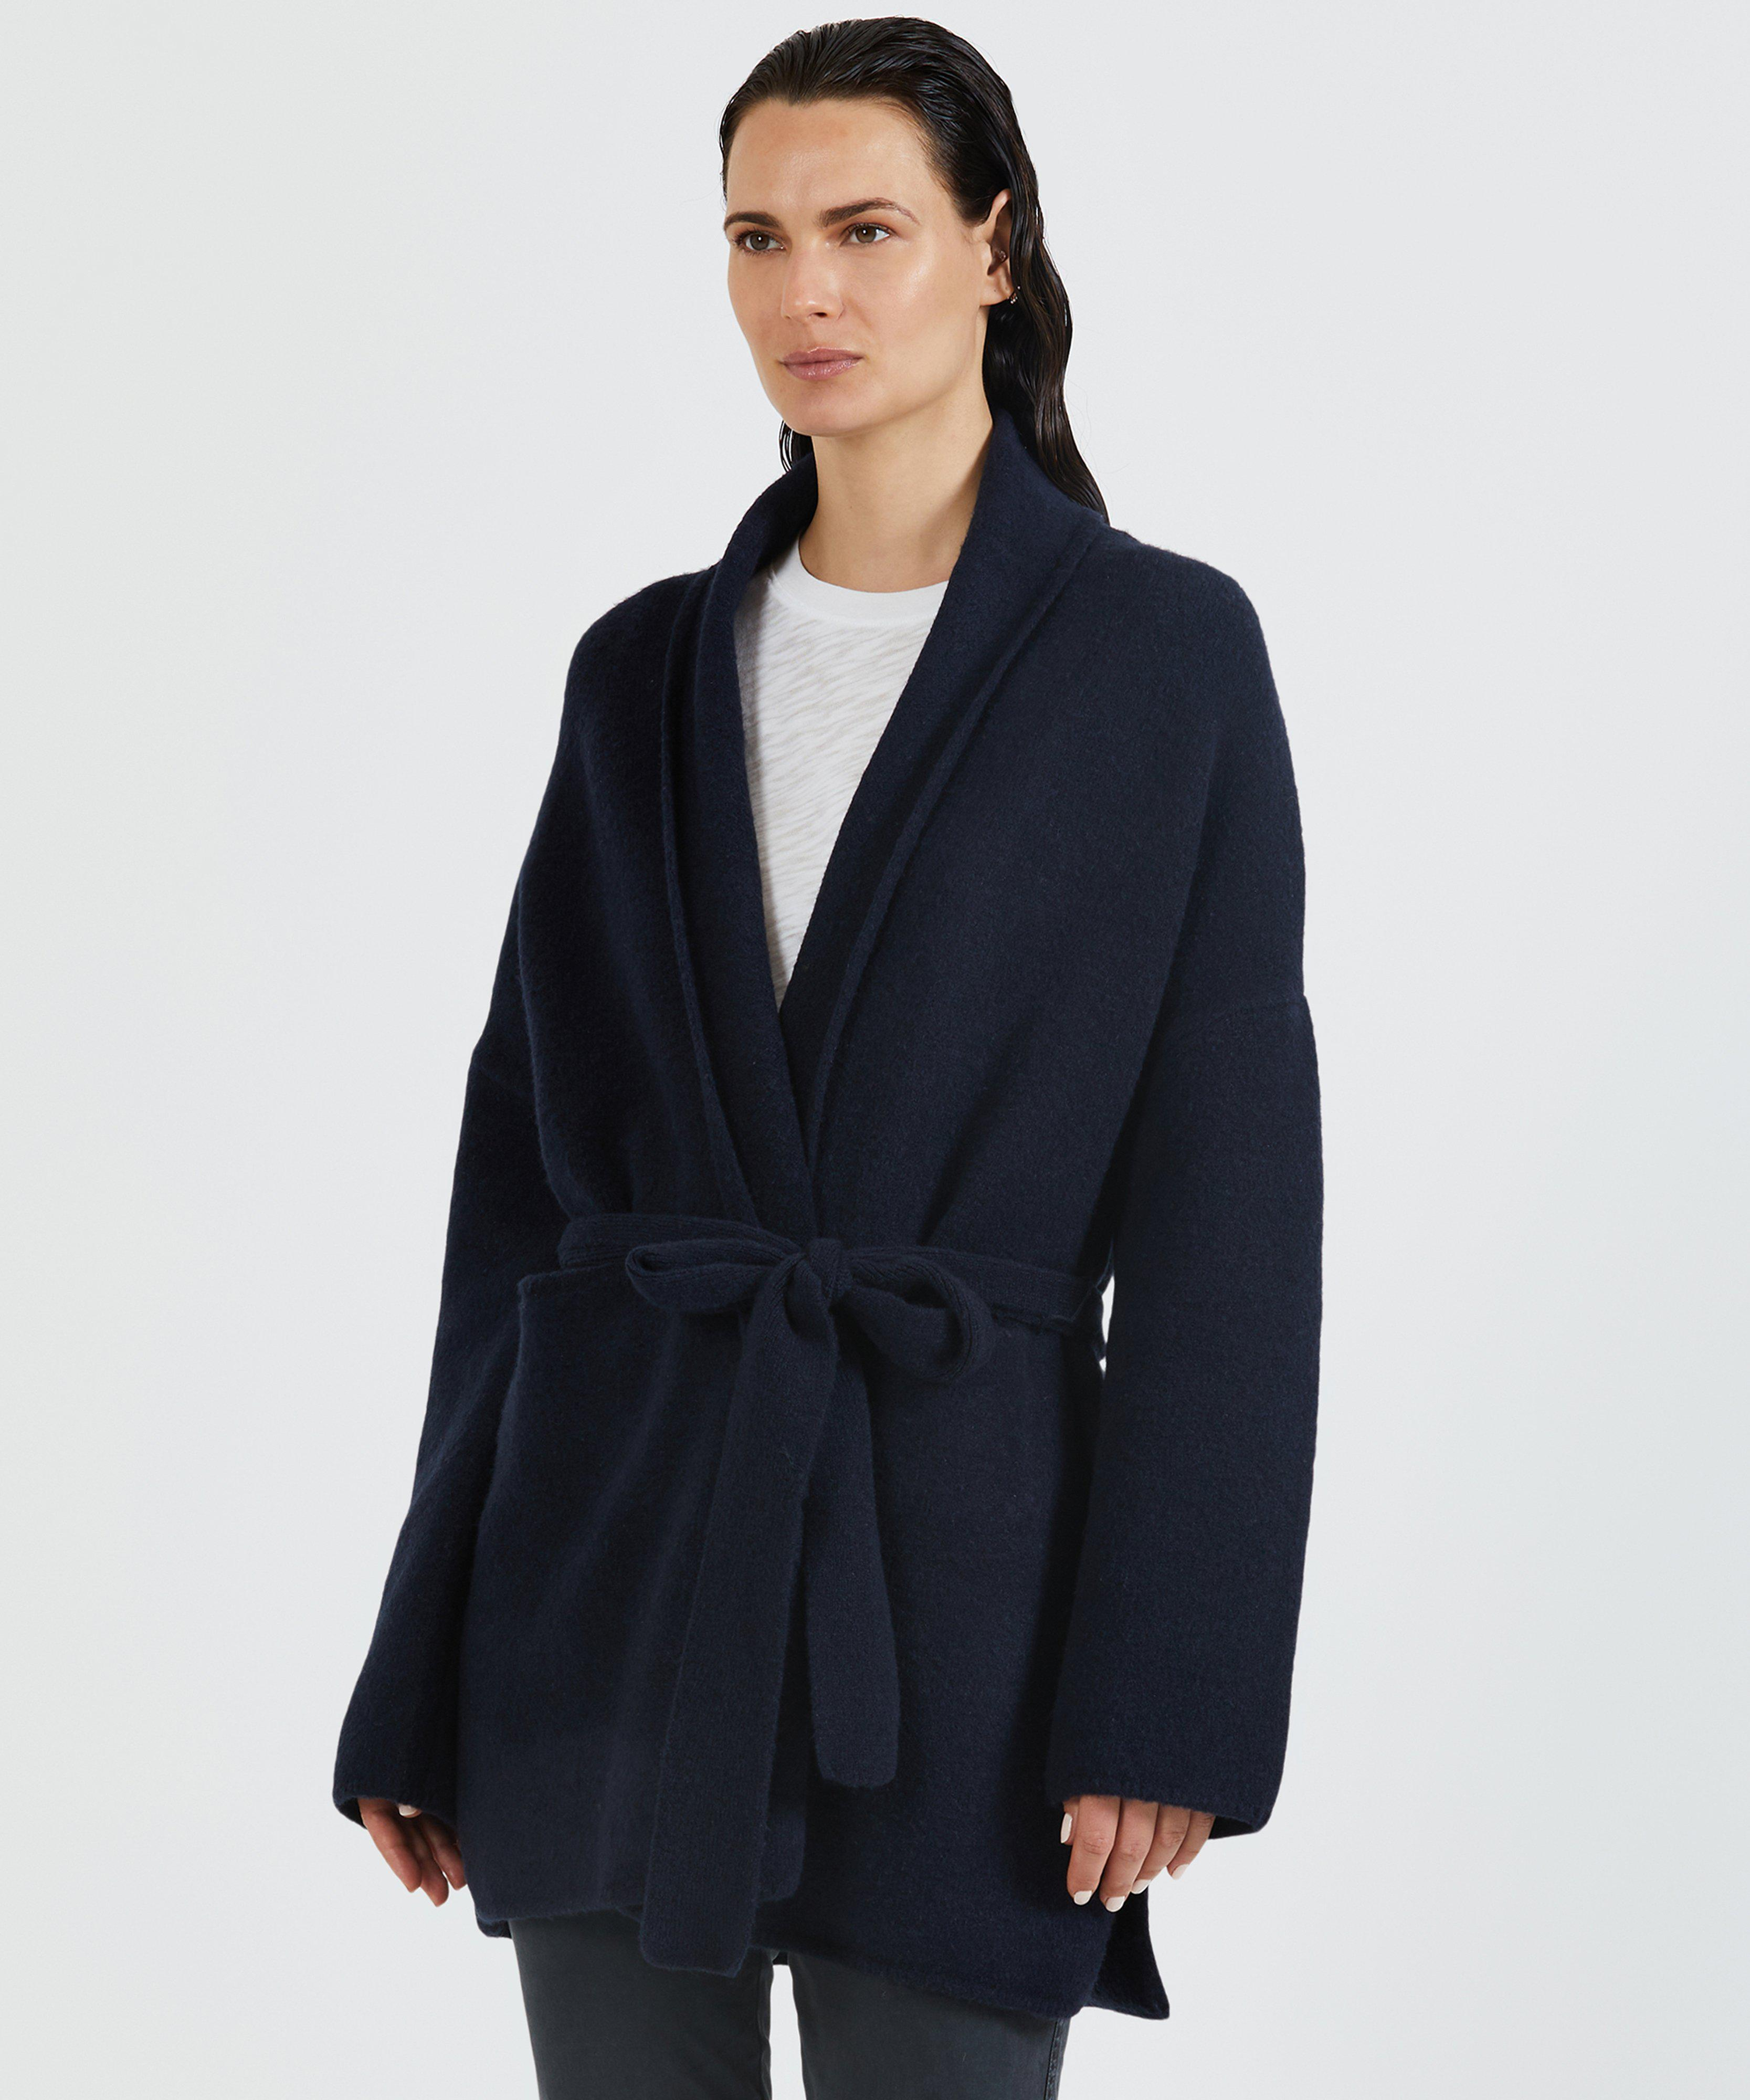 Wool Blend Belted Robe Sweater Coat - Navy